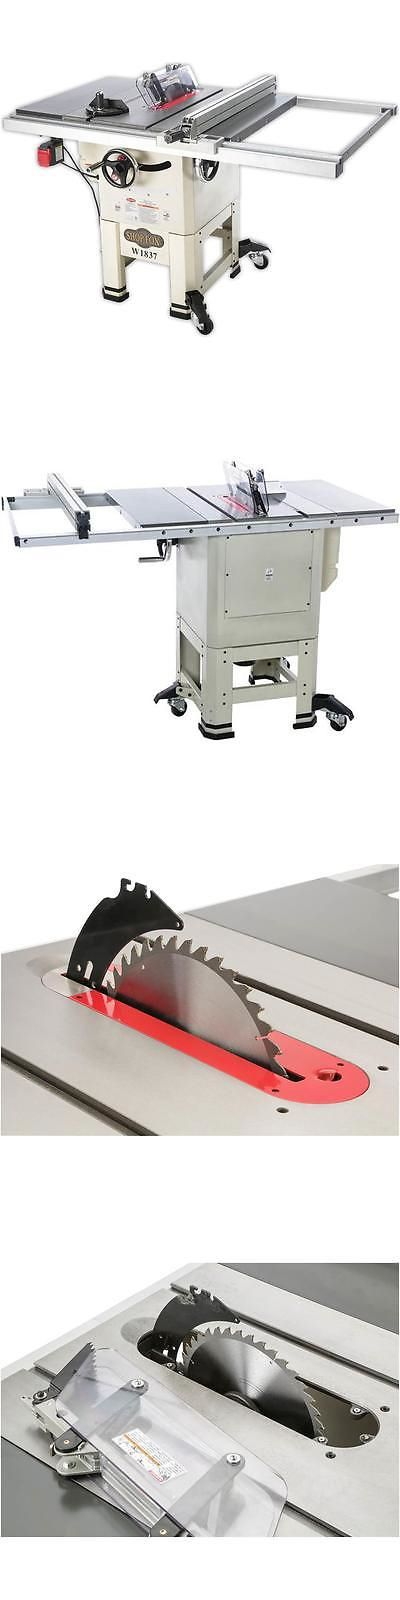 25 Best Ideas About Hybrid Table Saw On Pinterest